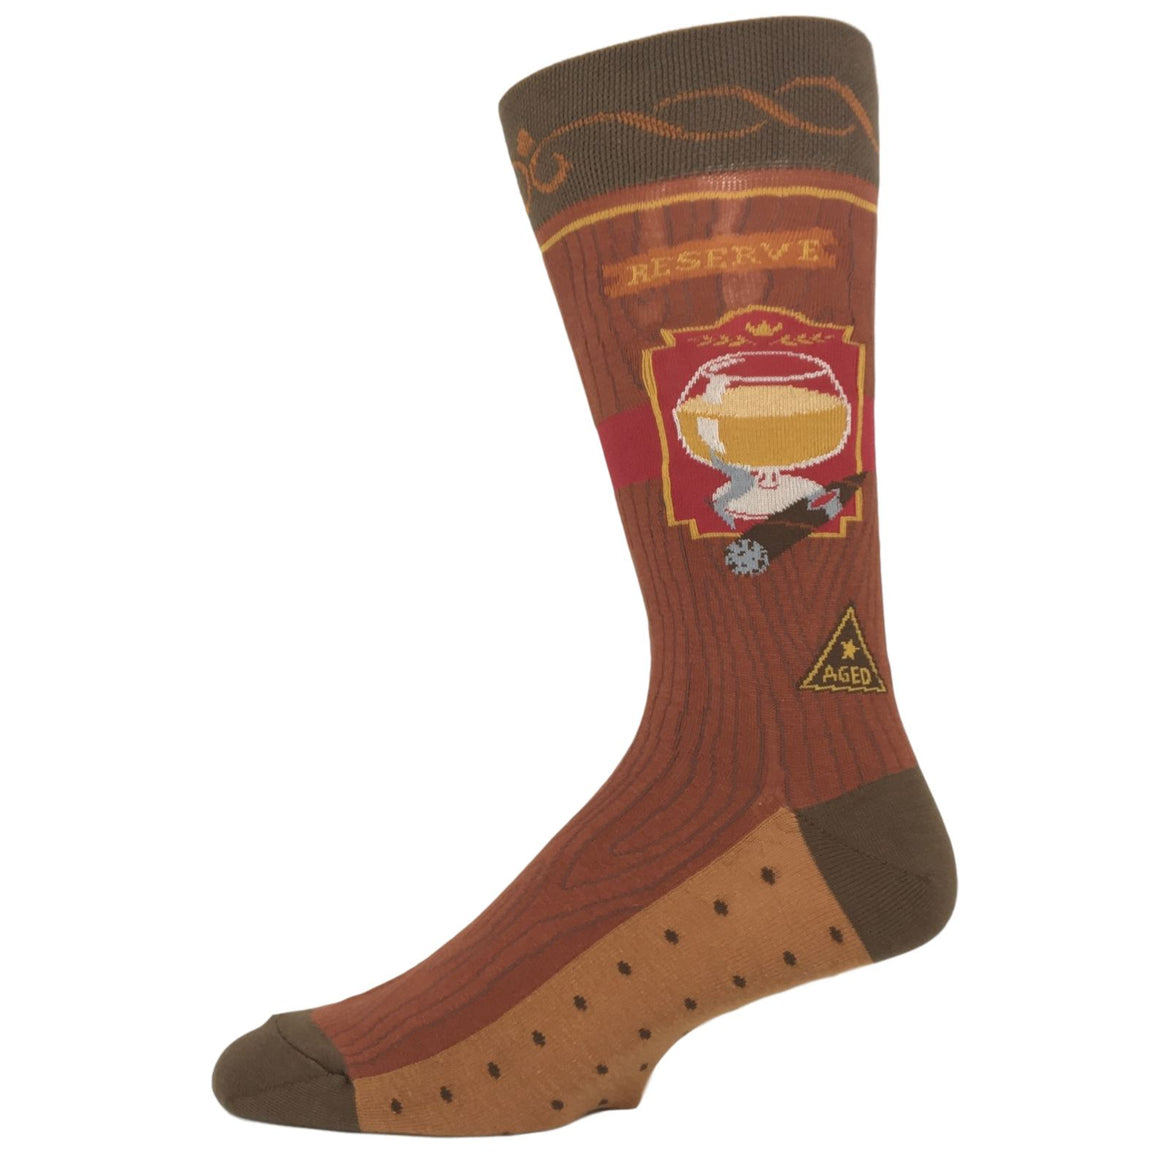 Bourbon and Cigar Socks by Foot Traffic - The Sock Spot